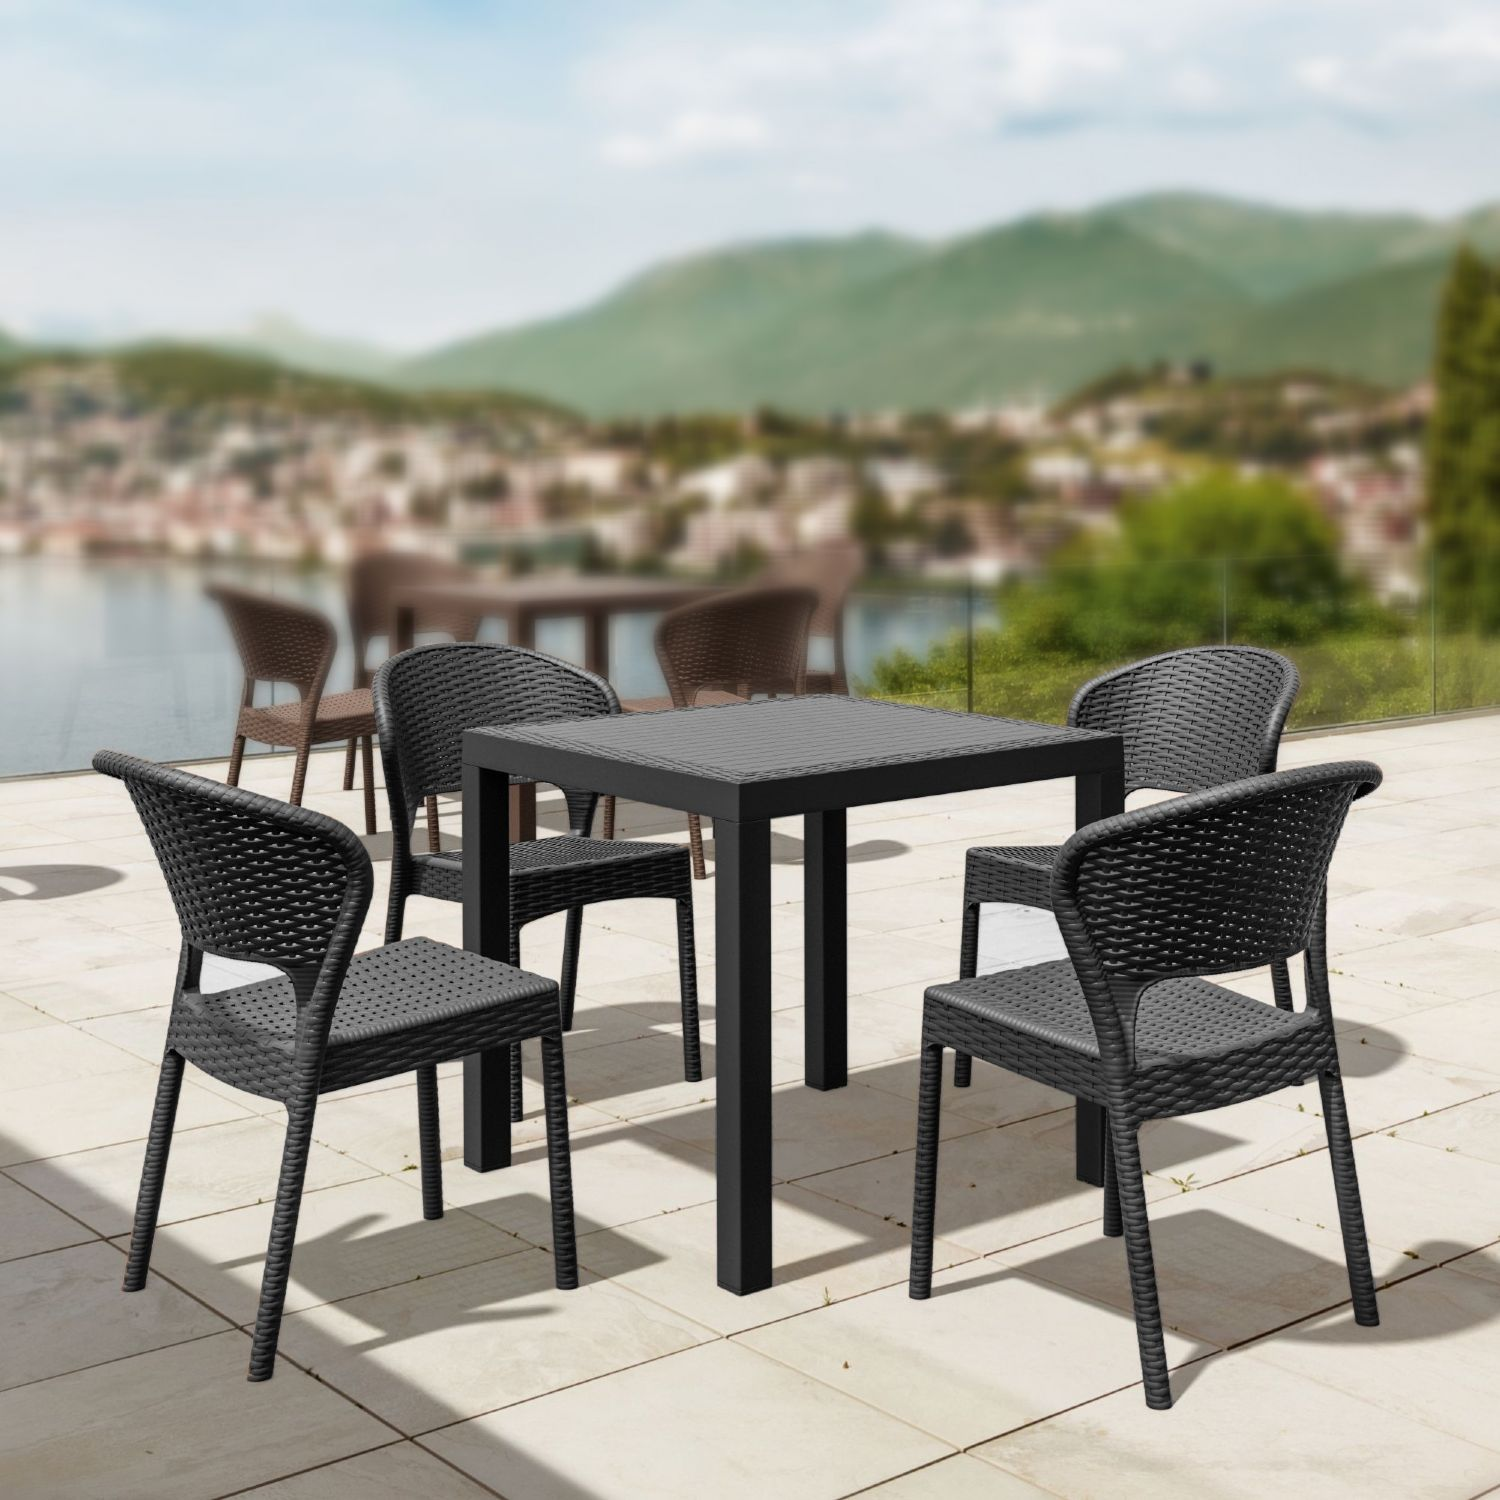 Daytona Wickerlook Square Patio Dining Set 5 Piece Dark Gray ISP8181S-DG - 2